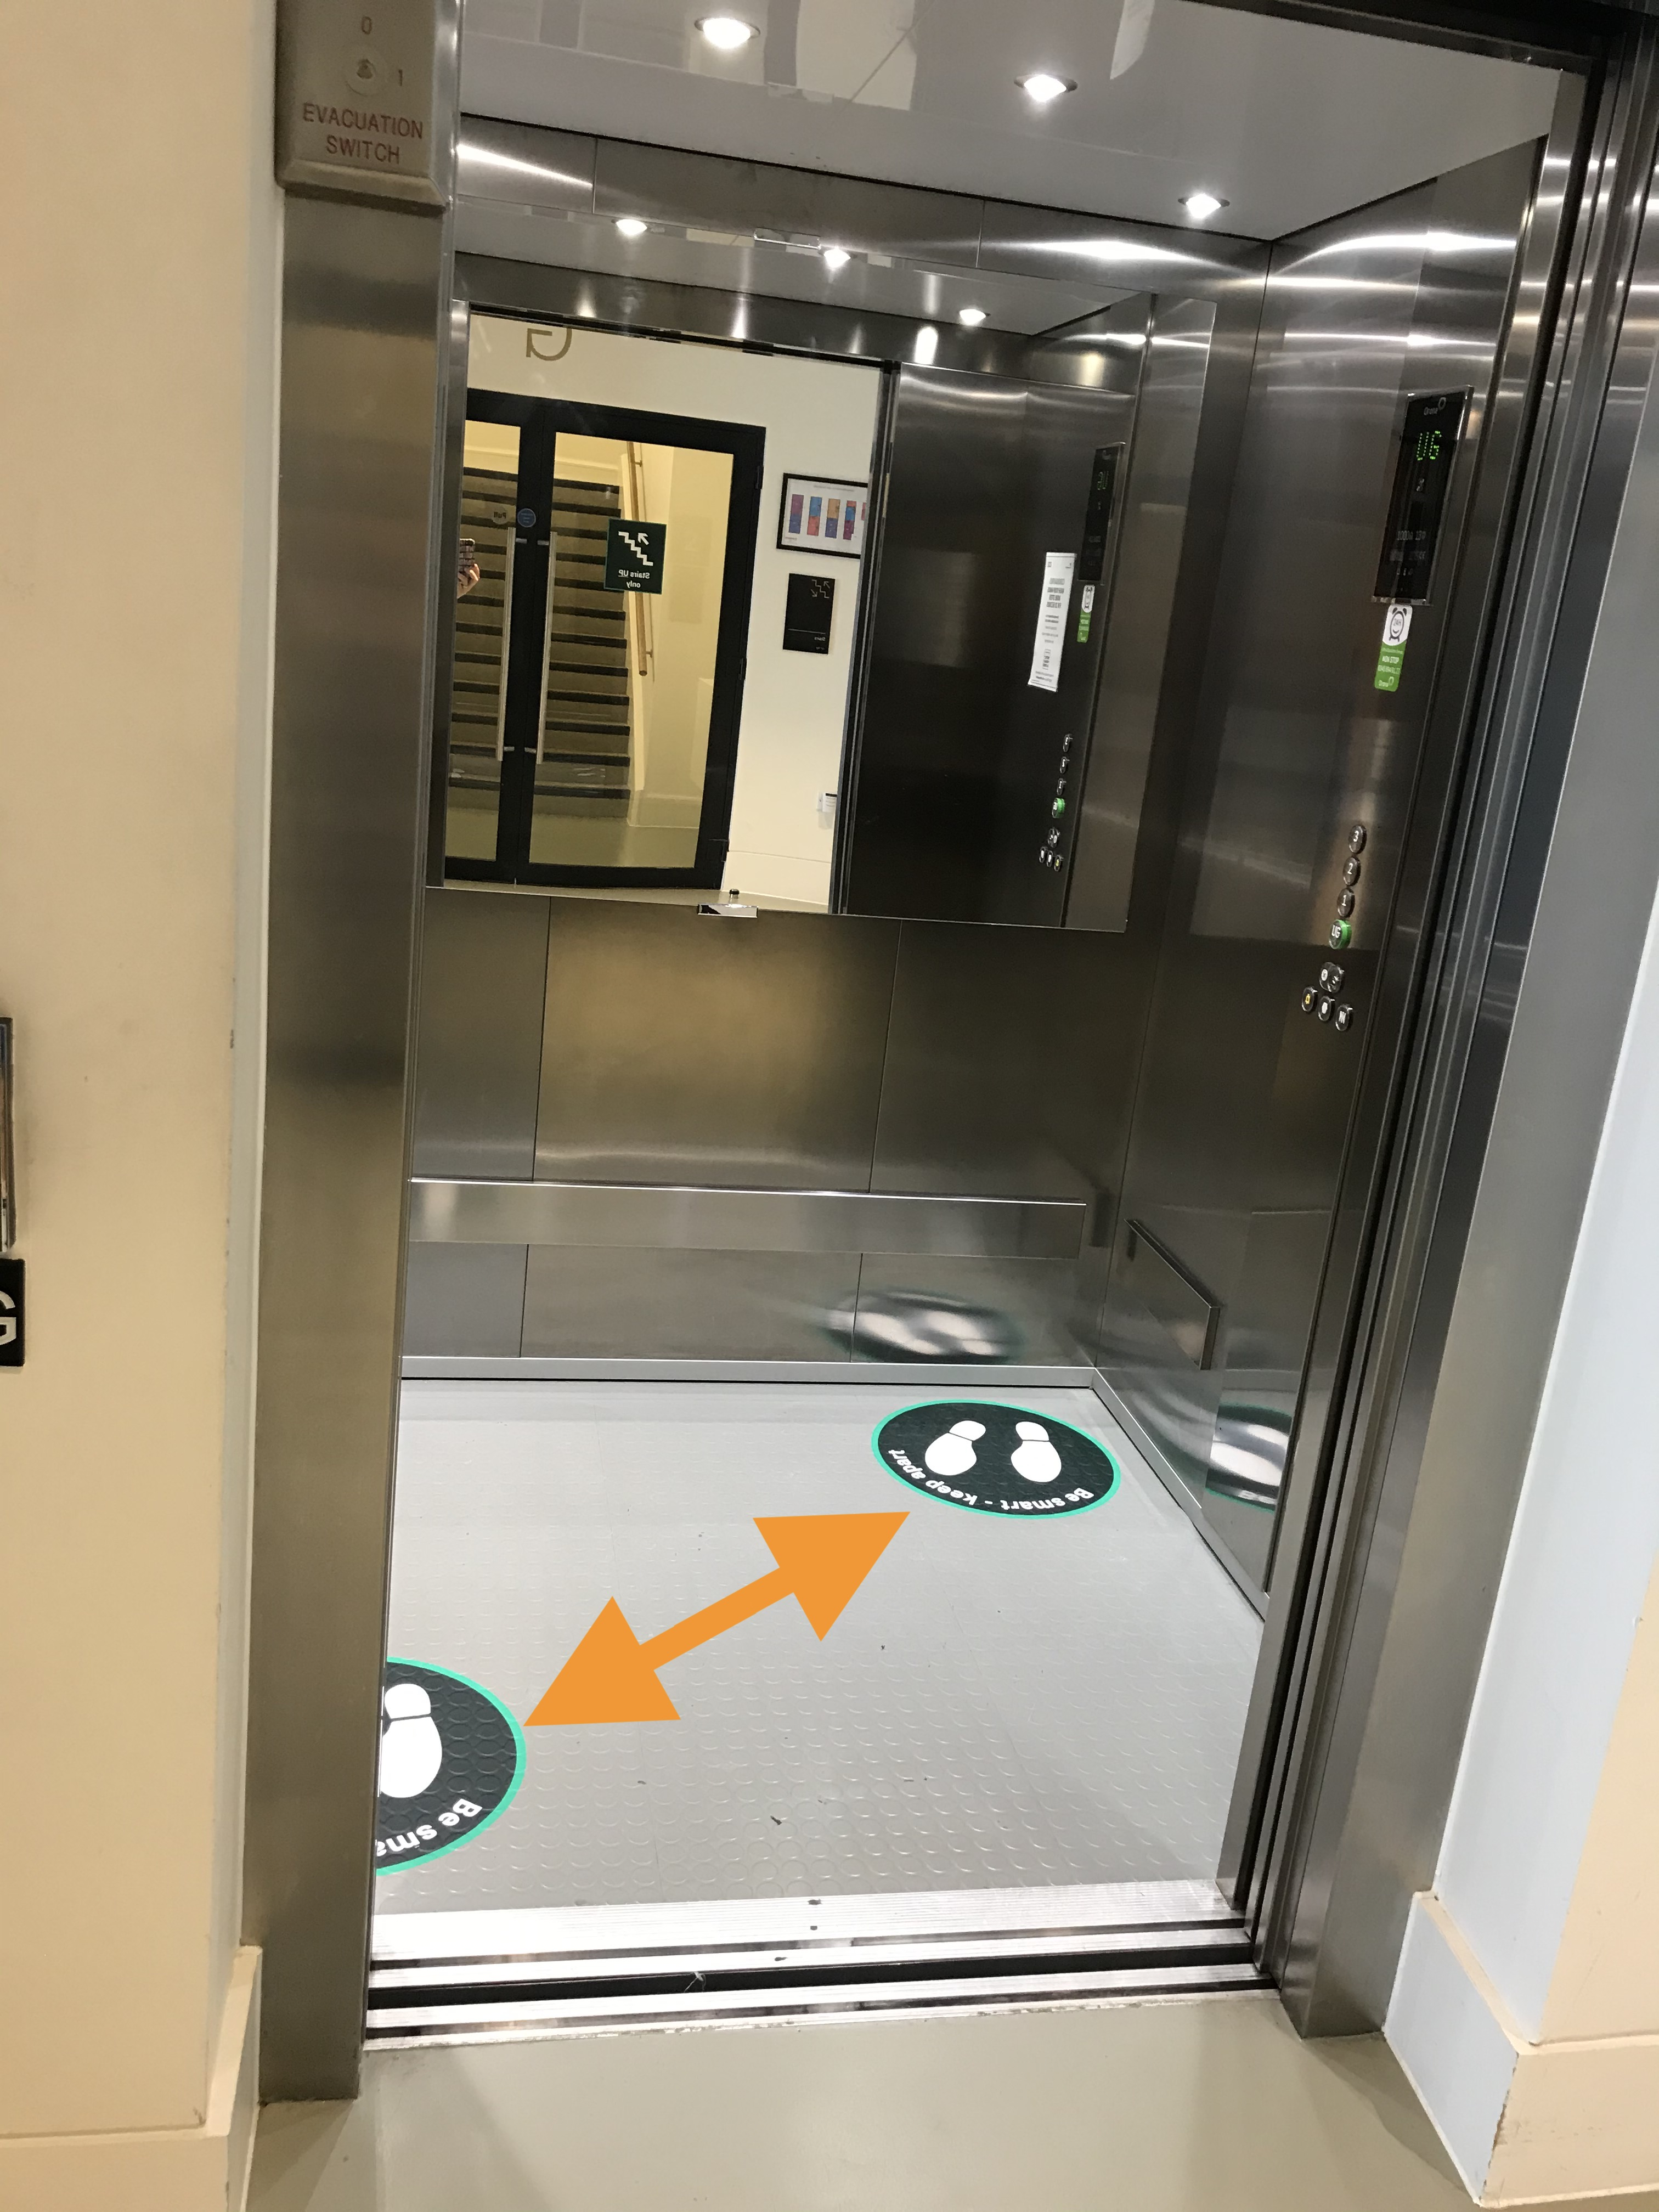 interior of the lift with two floor signs to stand on to show maximum capacity